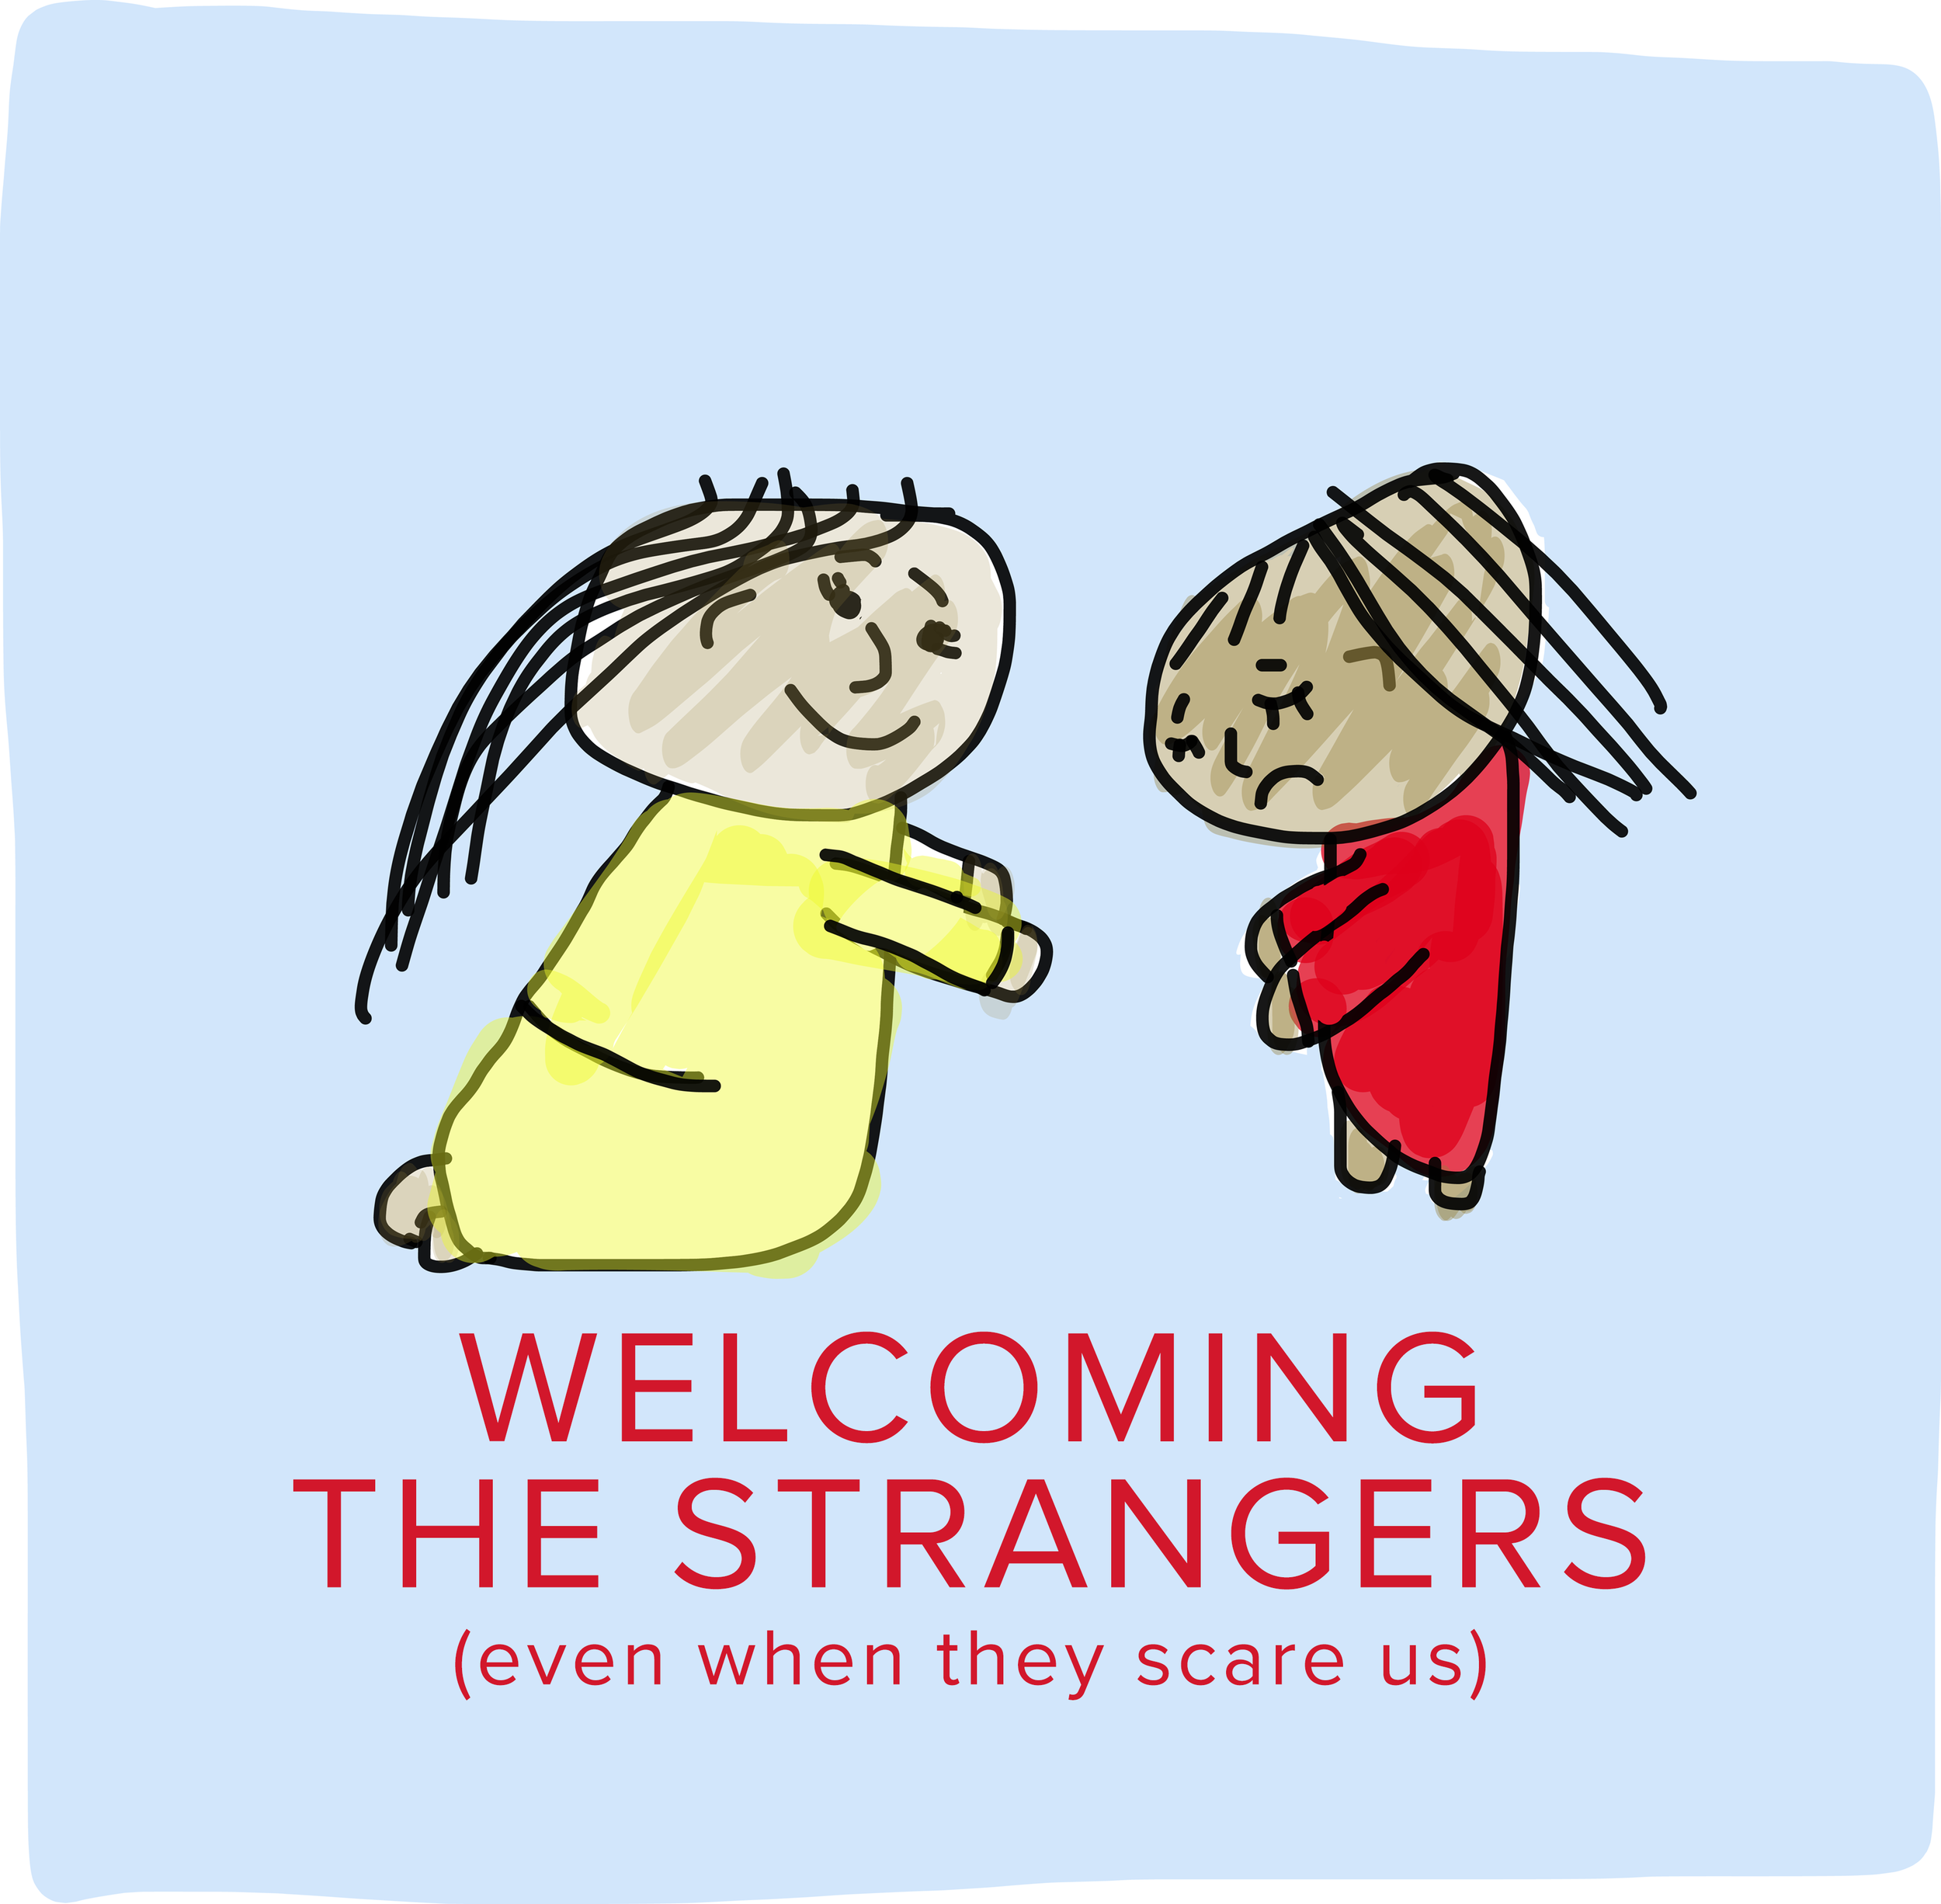 welcoming-the-stranger.jpg